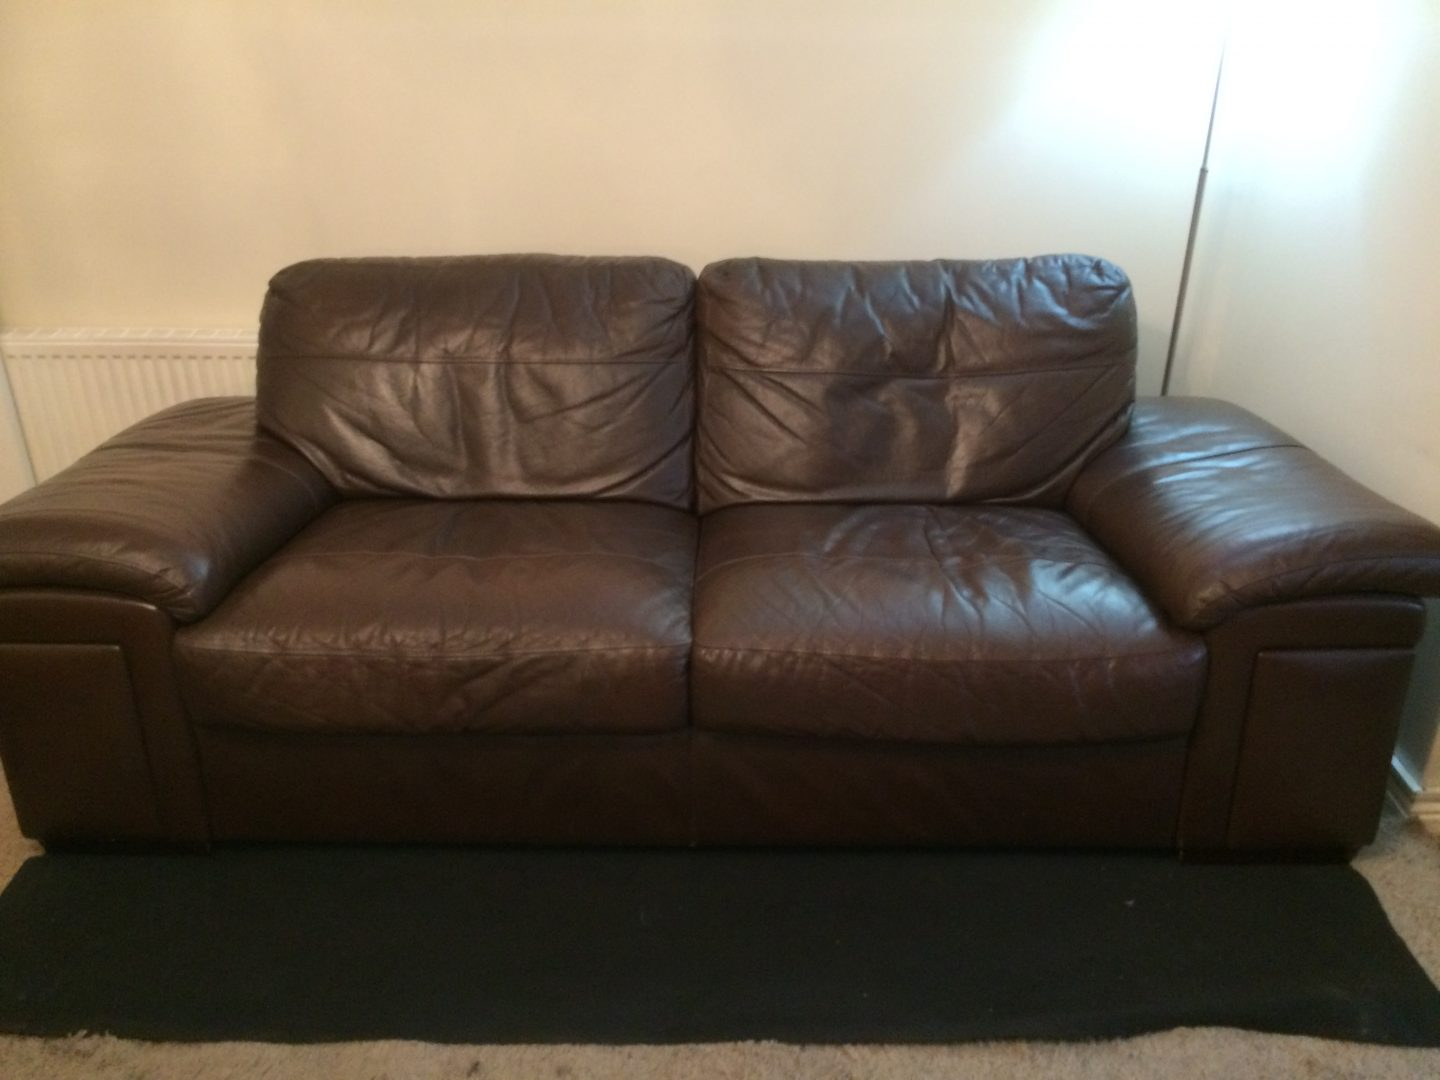 leather sofas in hyderabad india wooden sofa set cheap rate repairs recliner furniture ltd home page